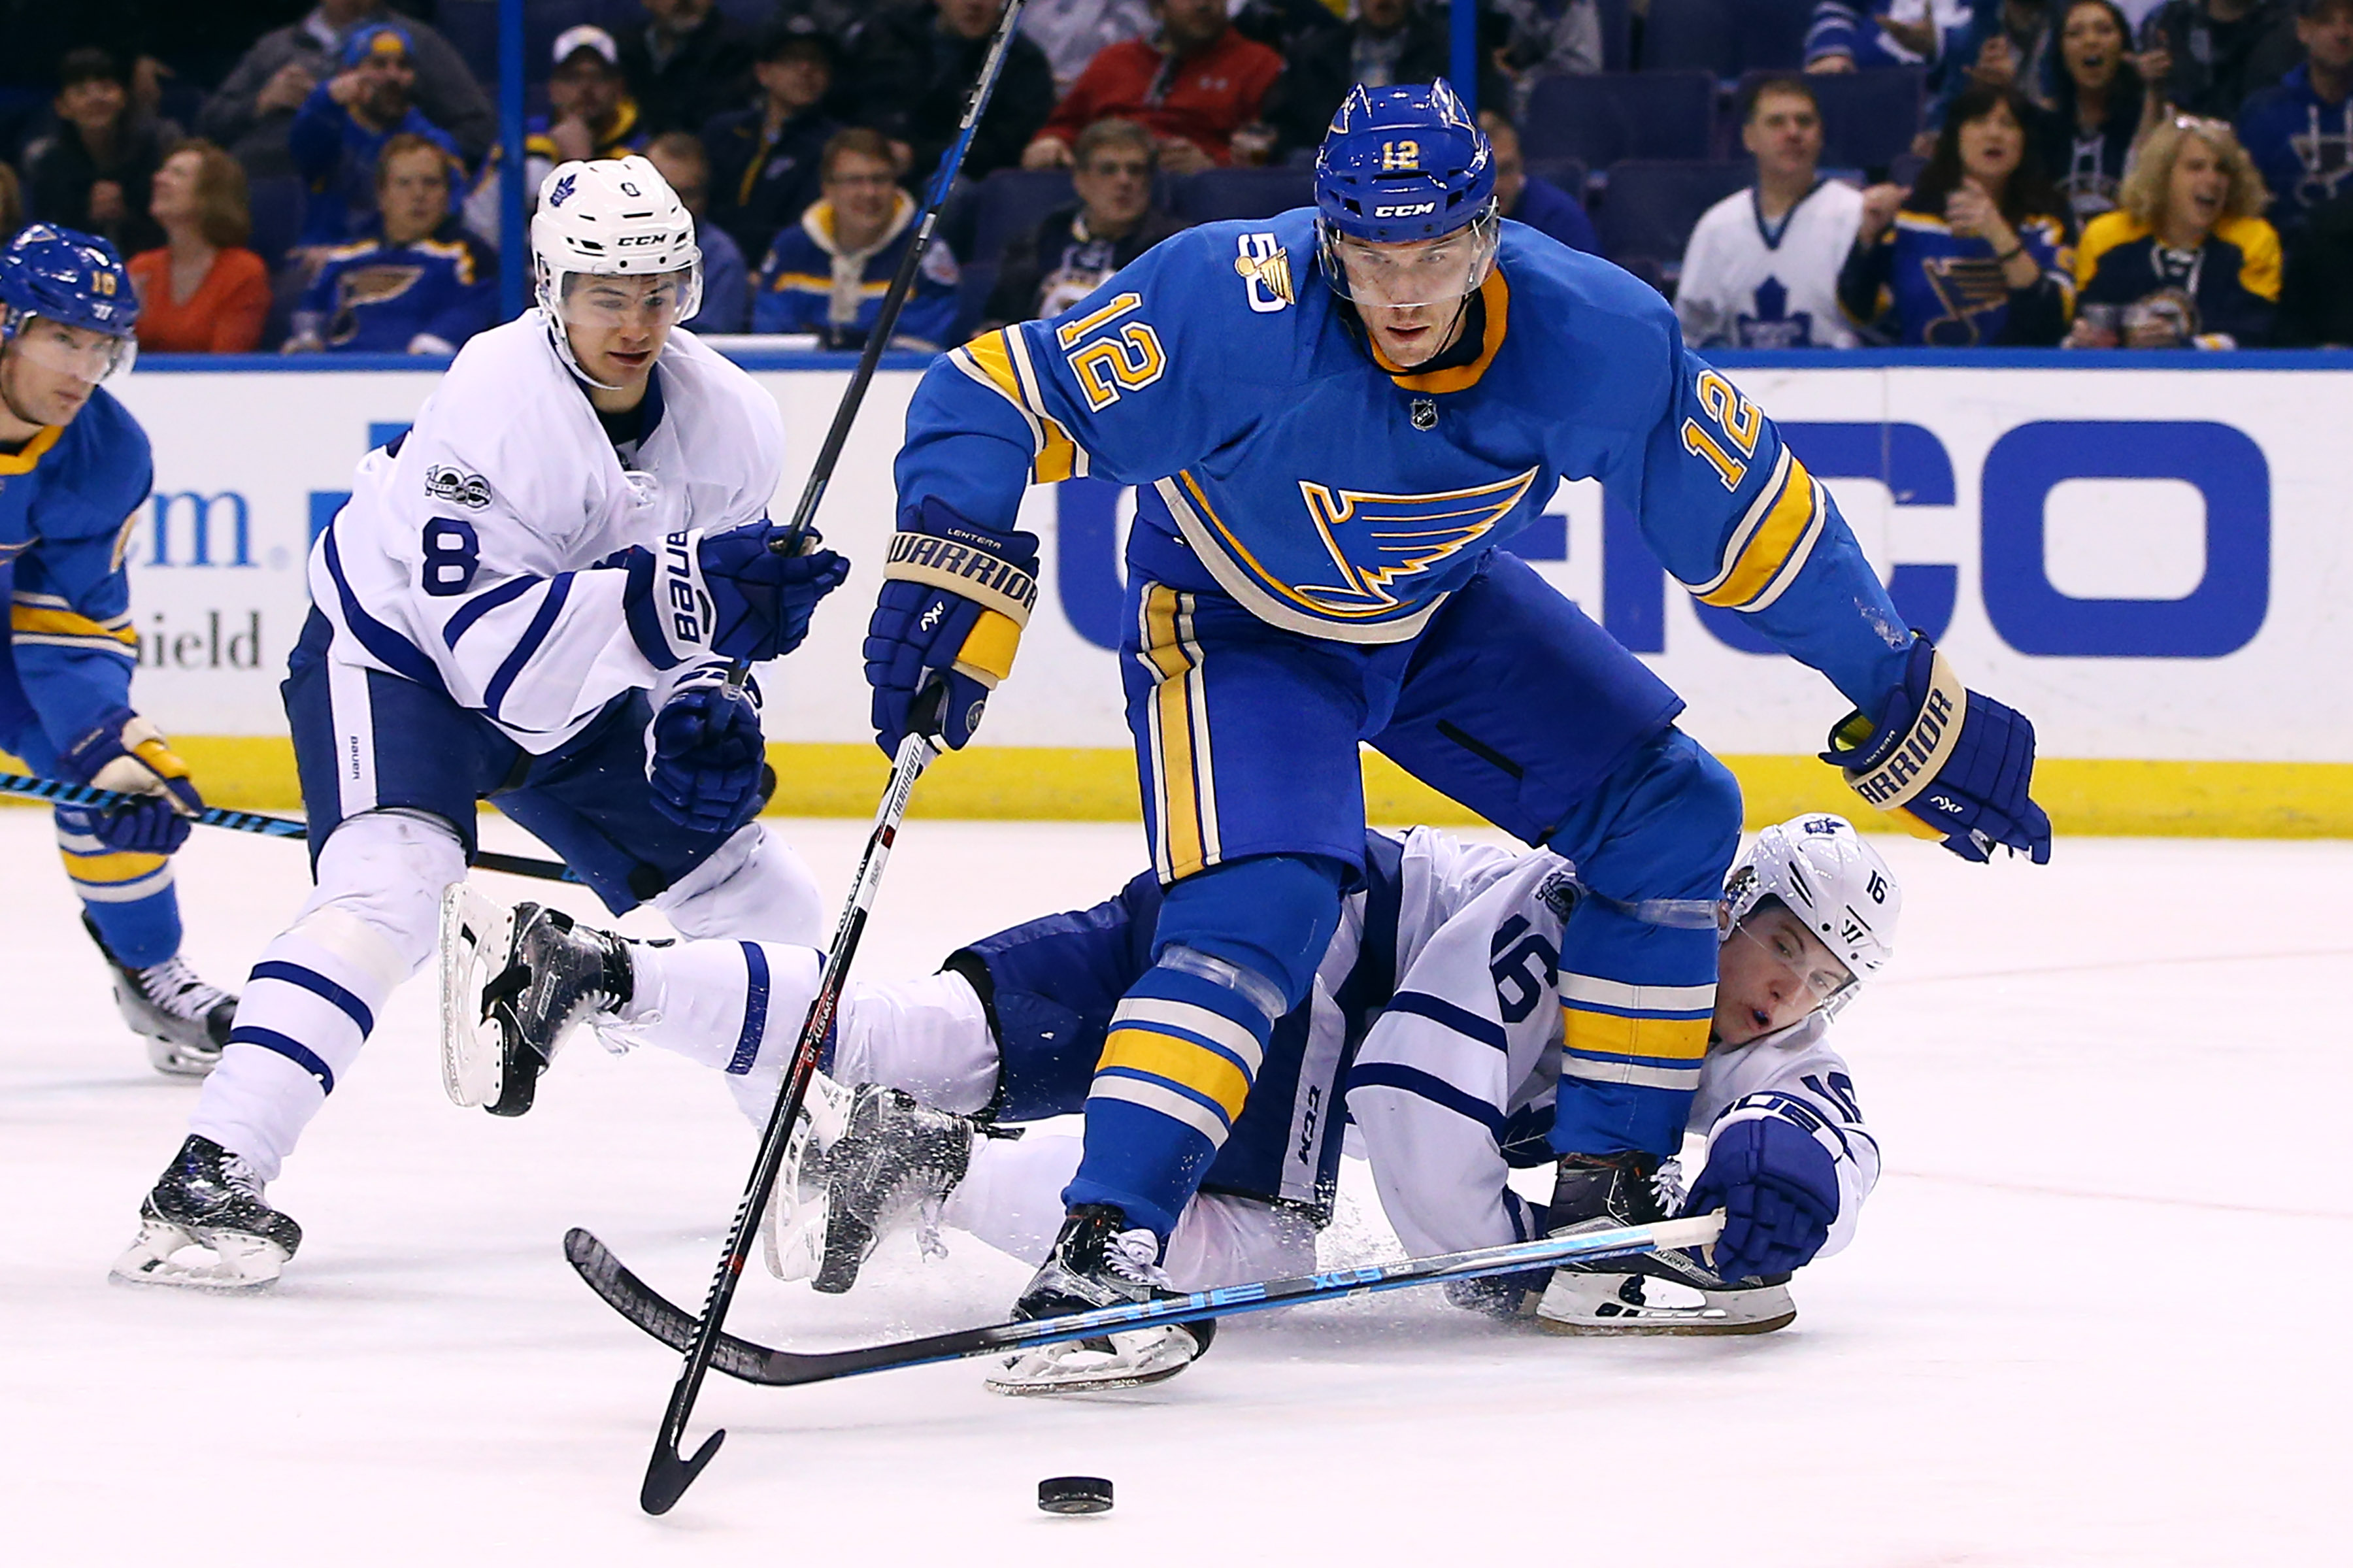 9869452-nhl-toronto-maple-leafs-at-st.-louis-blues